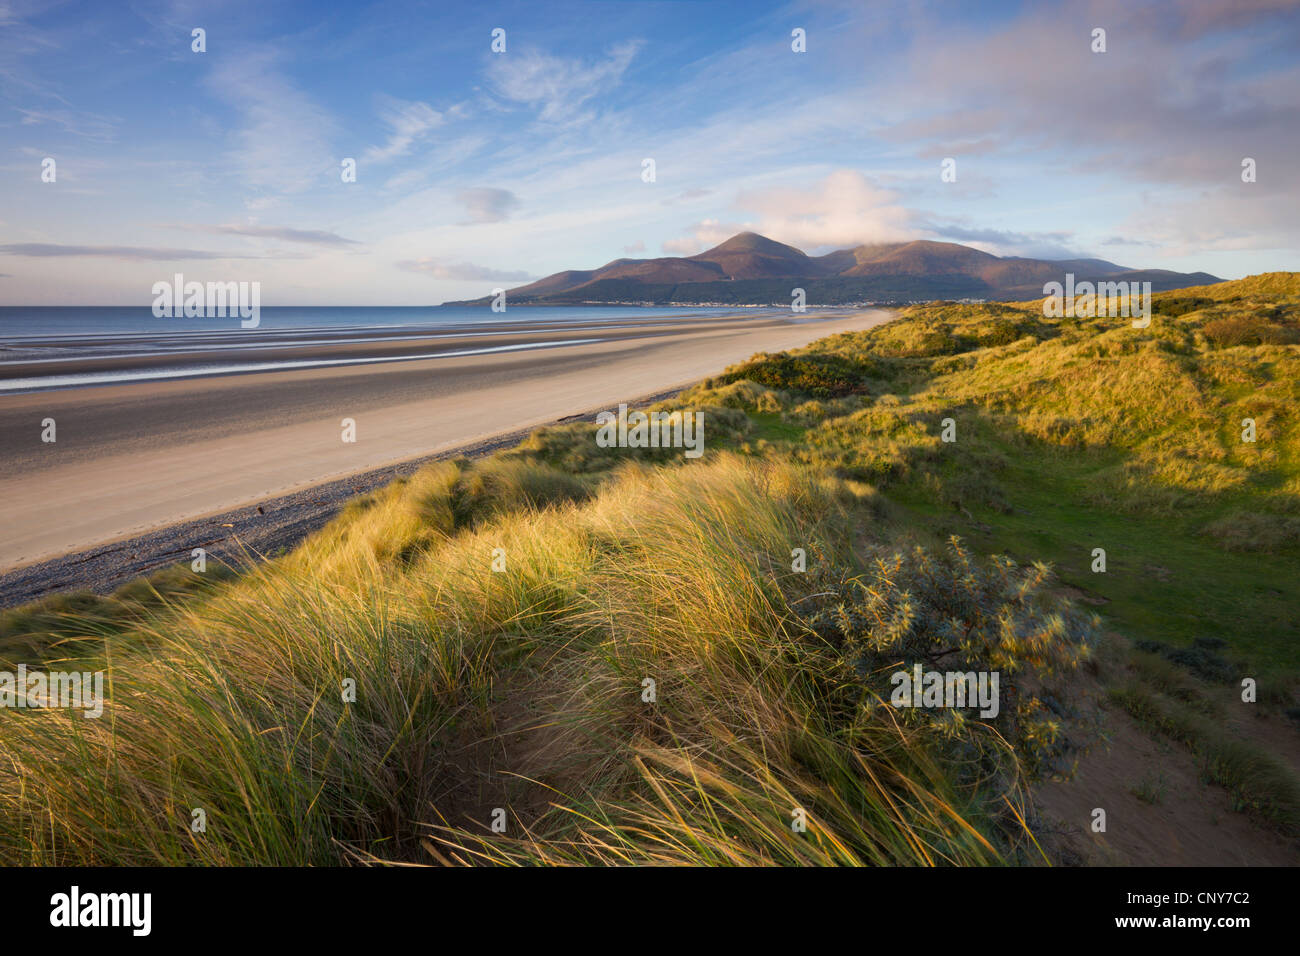 Sand dunes at Murlough alongside Dundrum Bay, with the Mountains of Mourne in the background, County Down, Northern - Stock Image